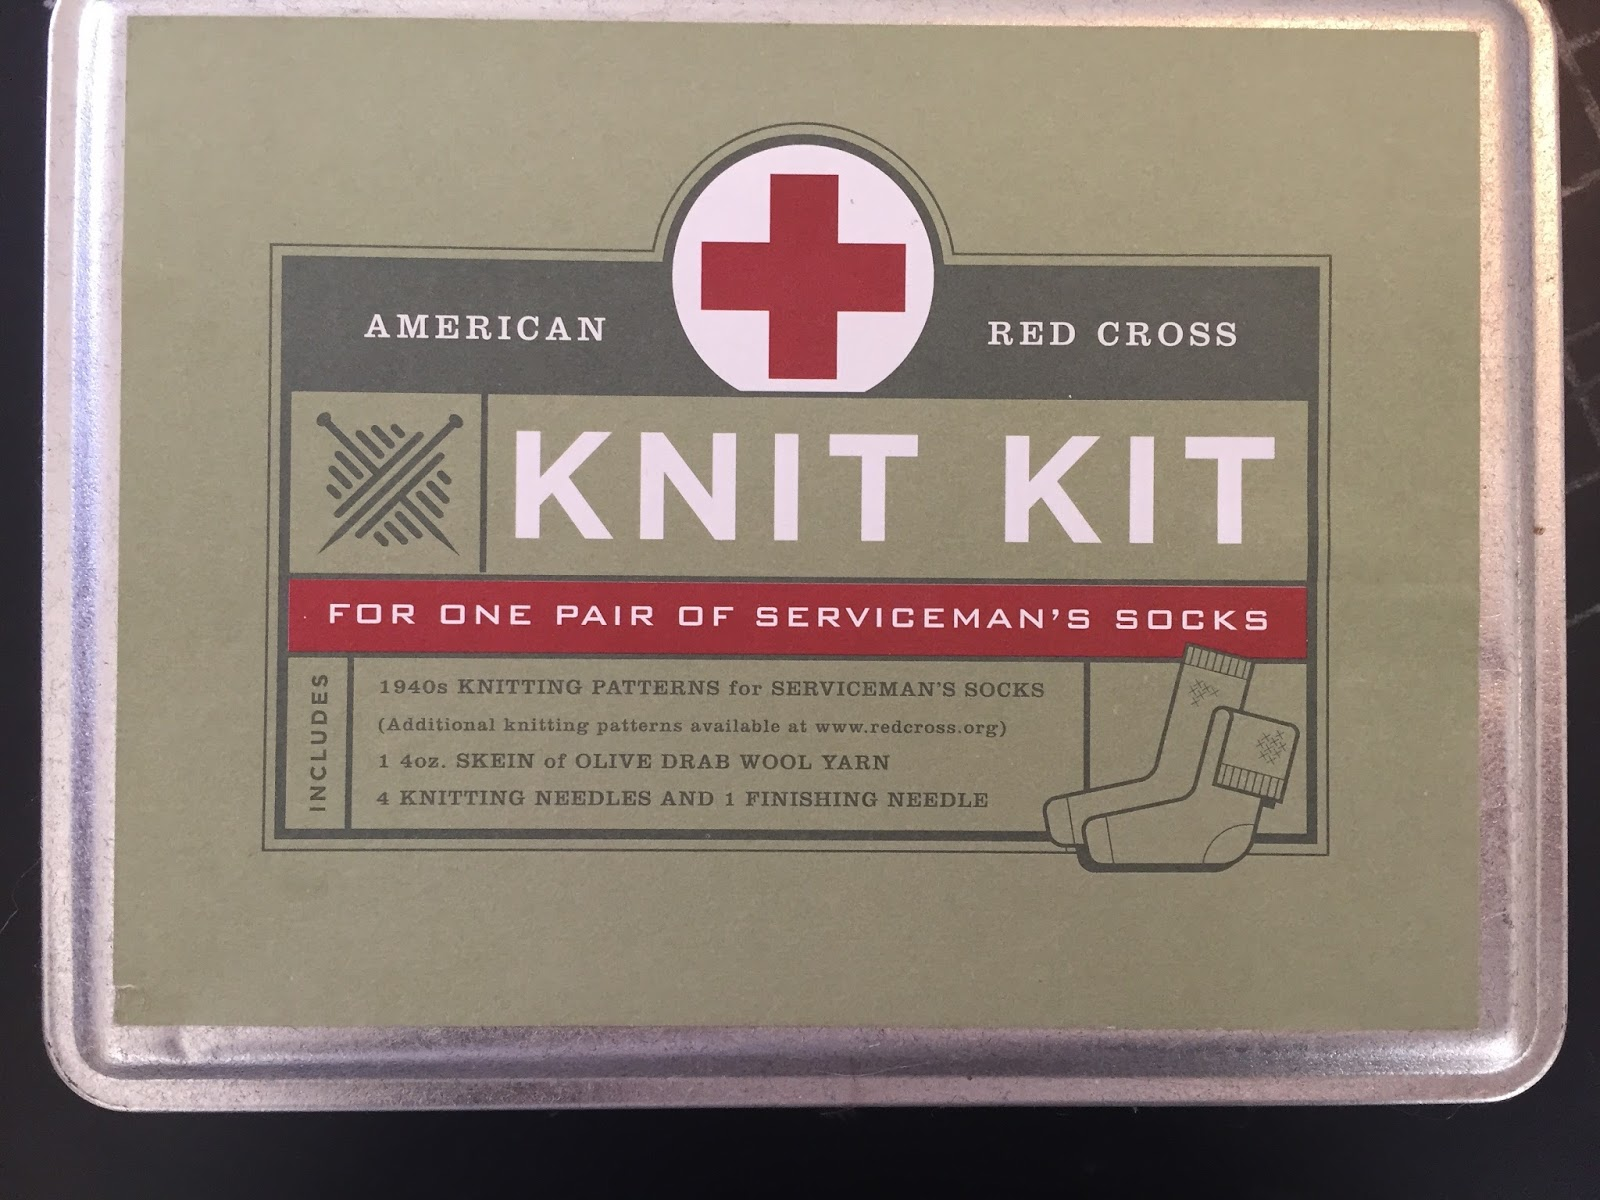 Running Stitches: Knitting Socks for the Red Cross